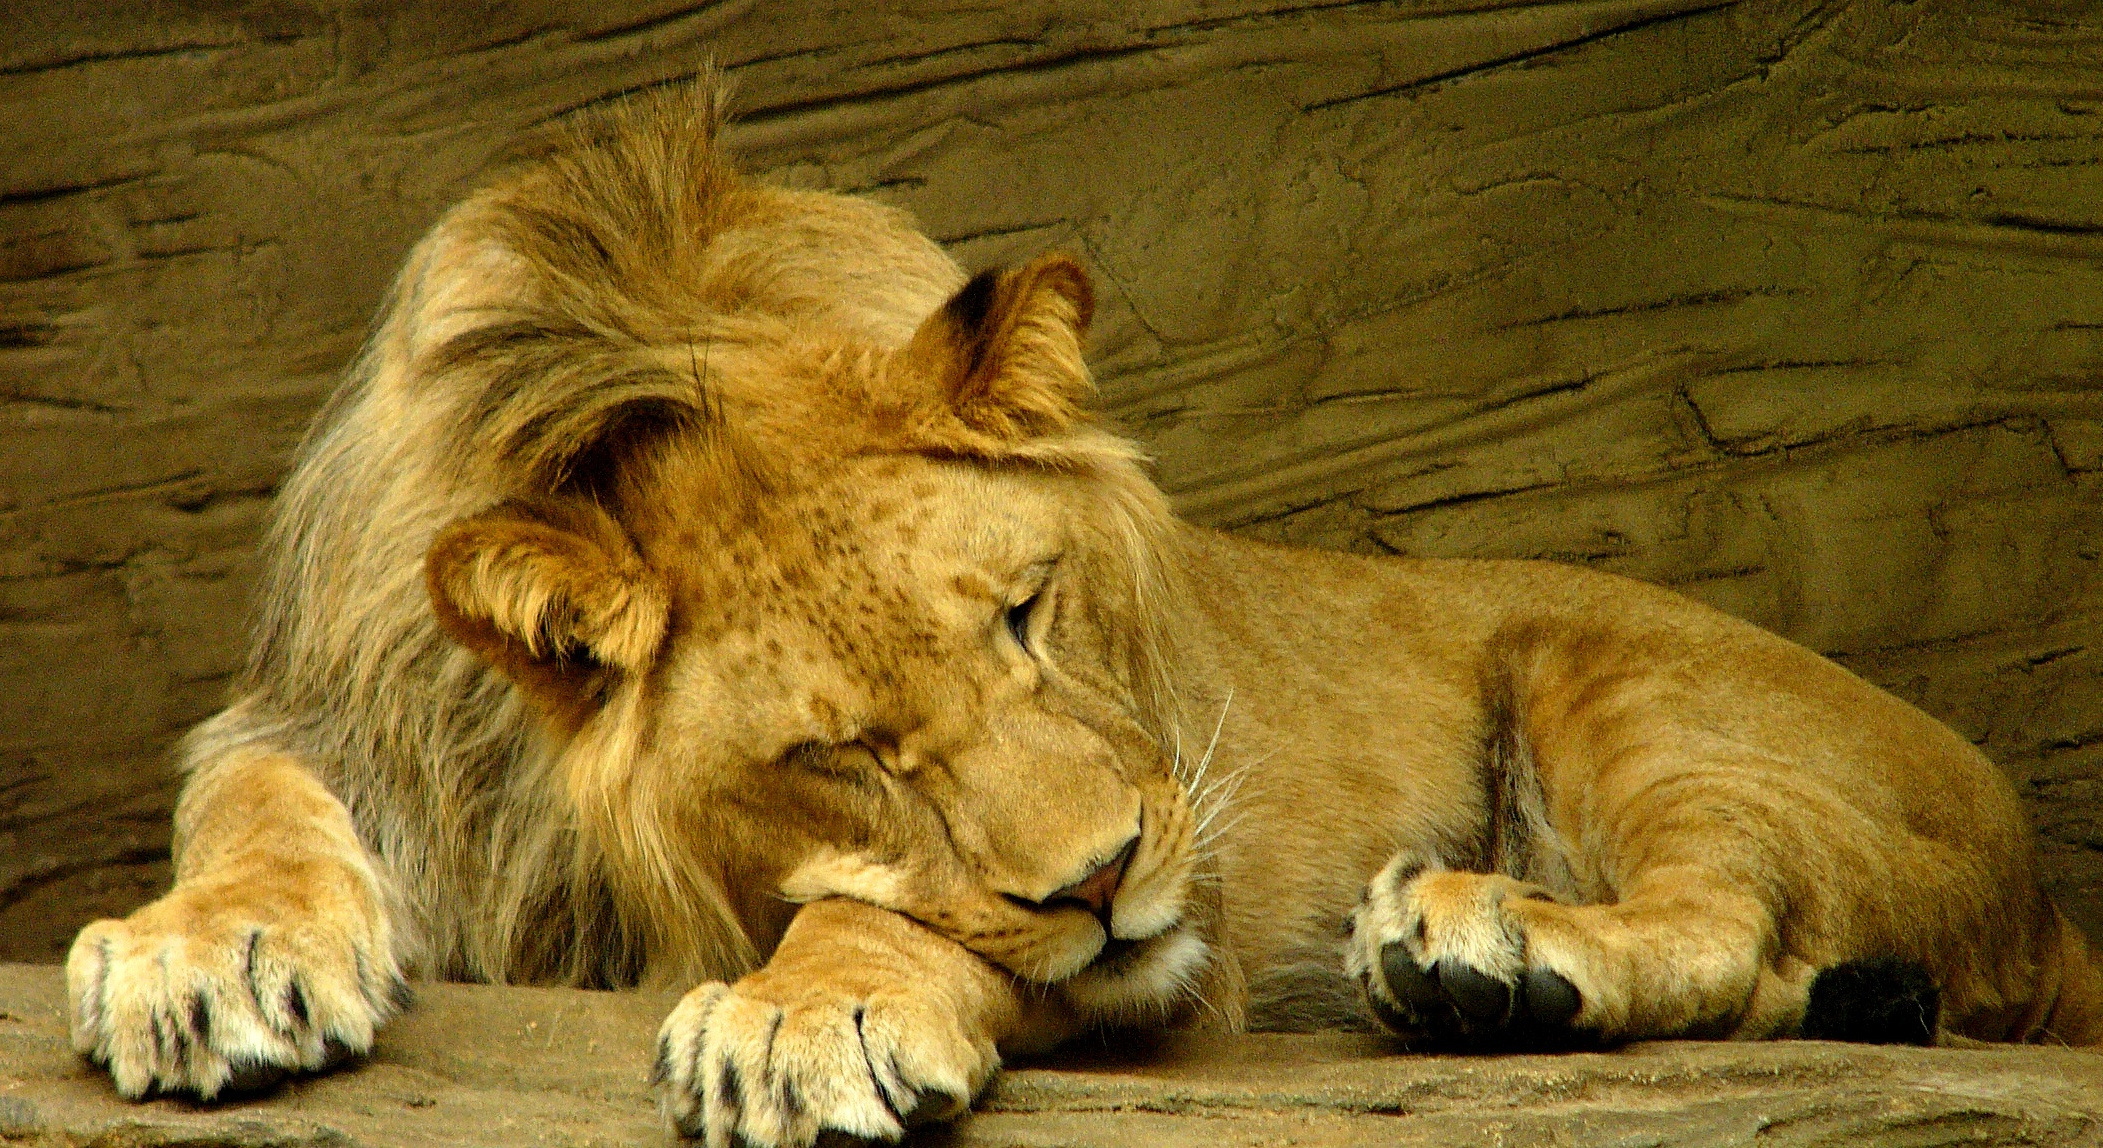 Description Sleeping lion.jpg